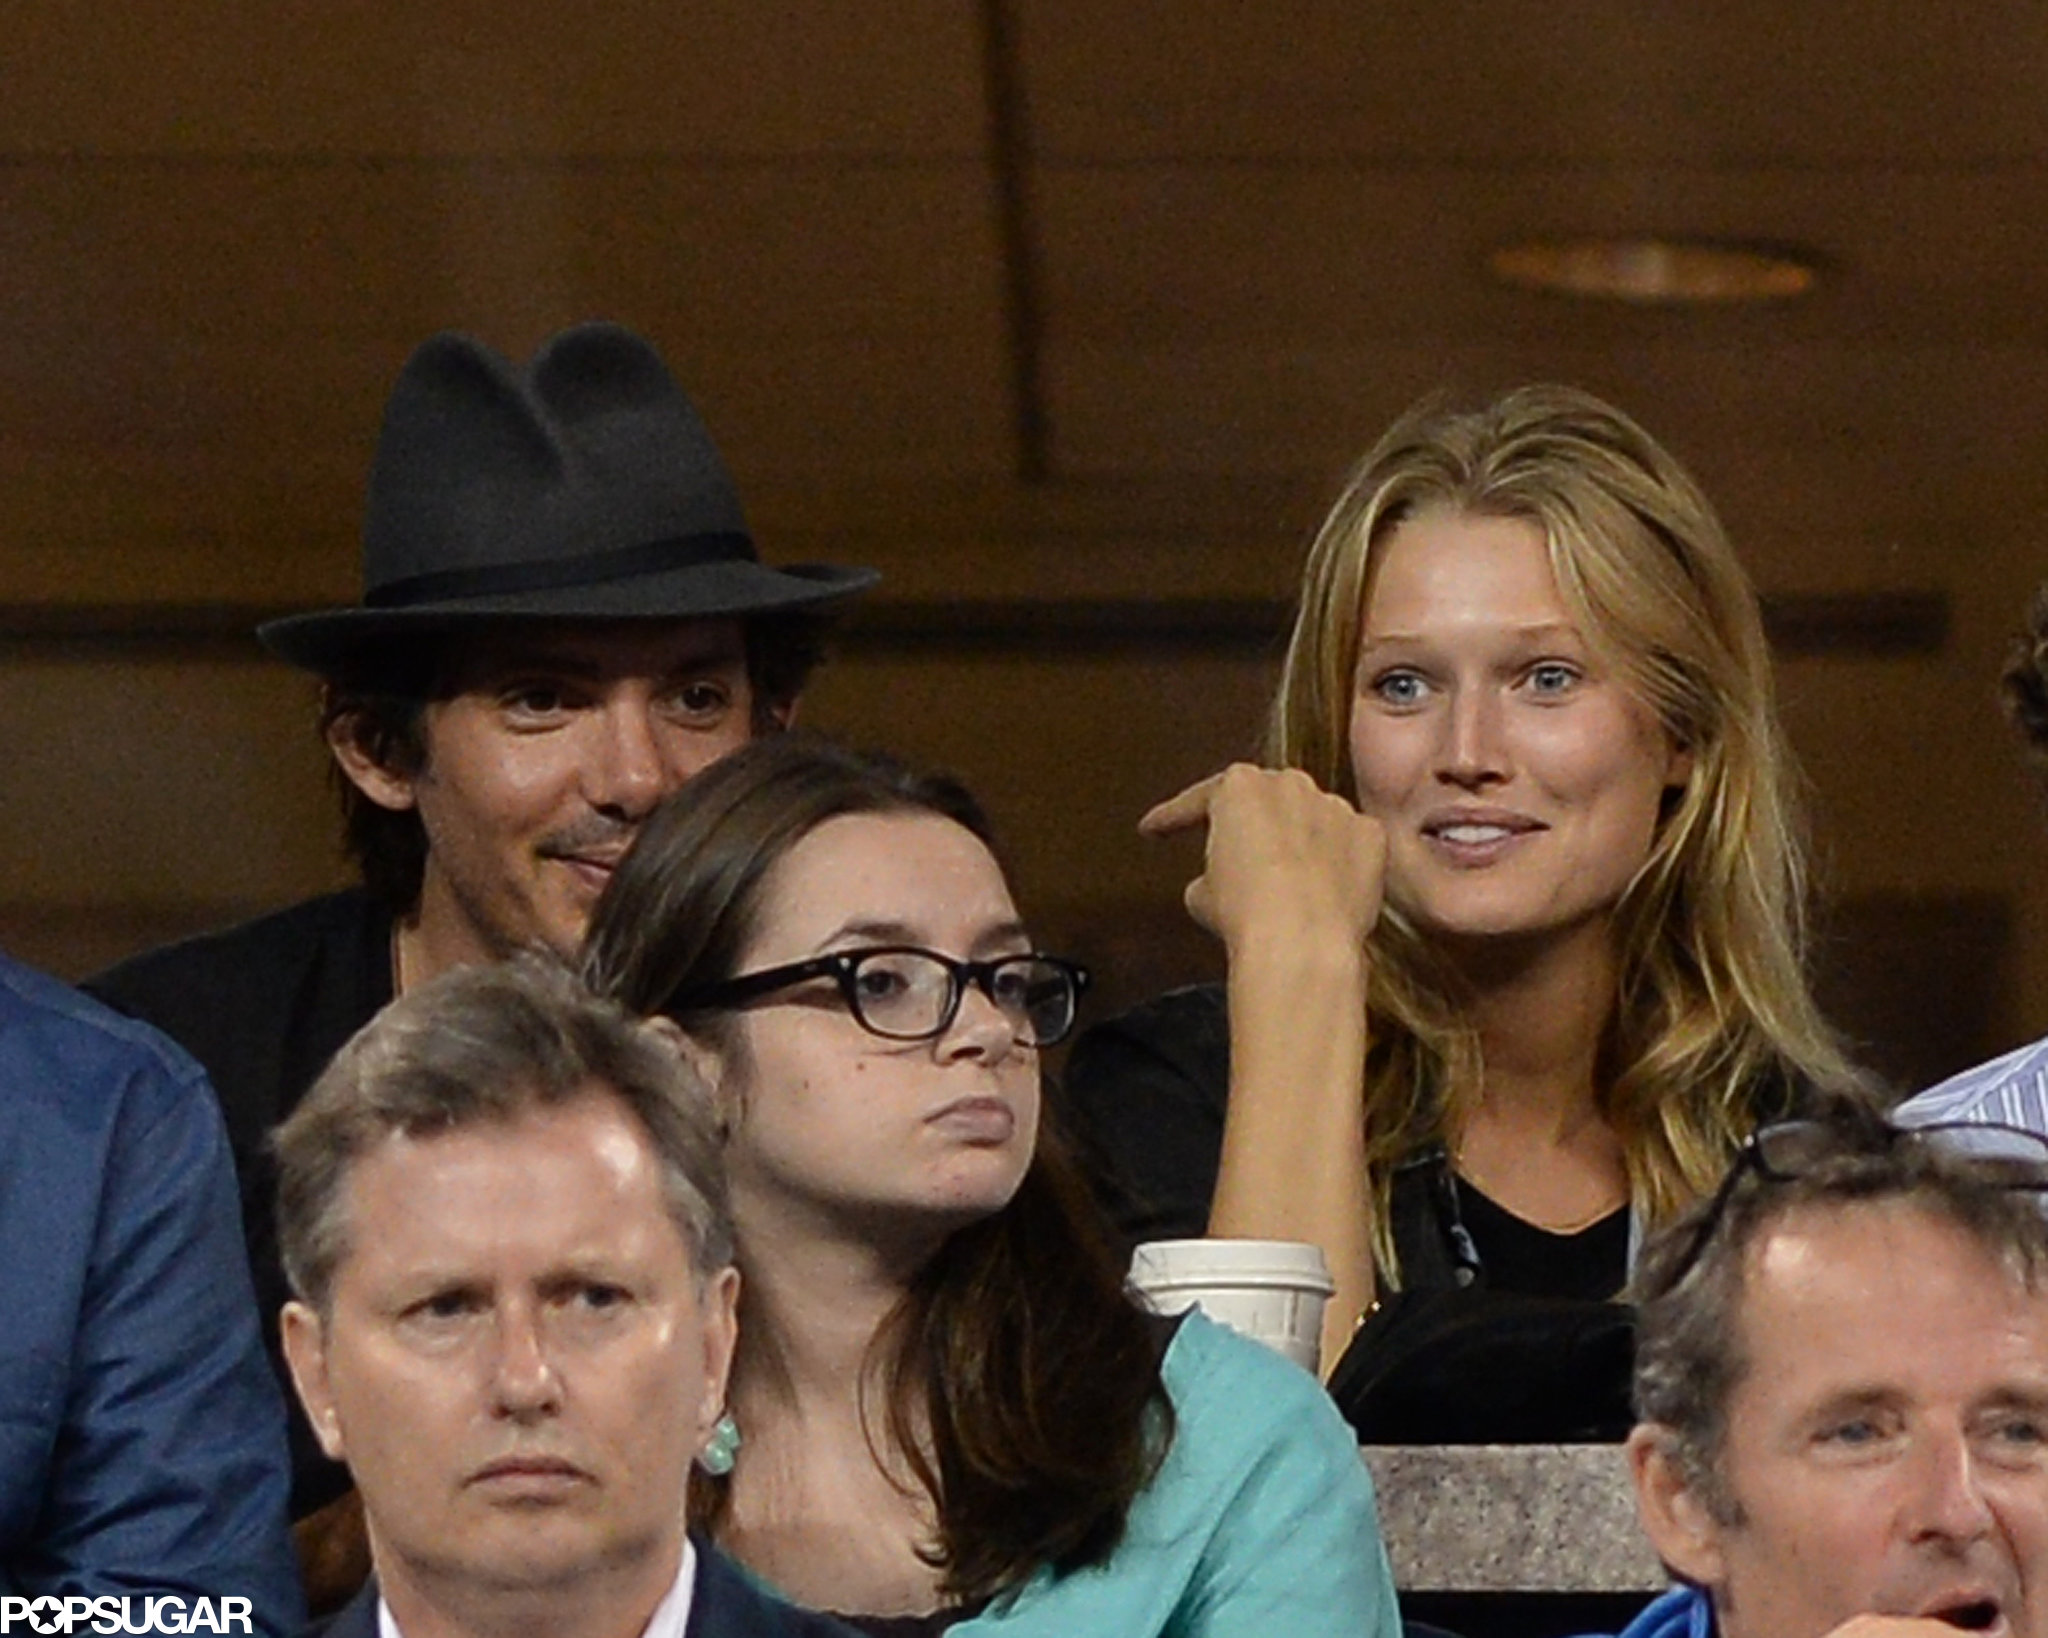 Lukas Haas sat next to Leonardo DiCaprio's girlfriend, Toni Garrn.